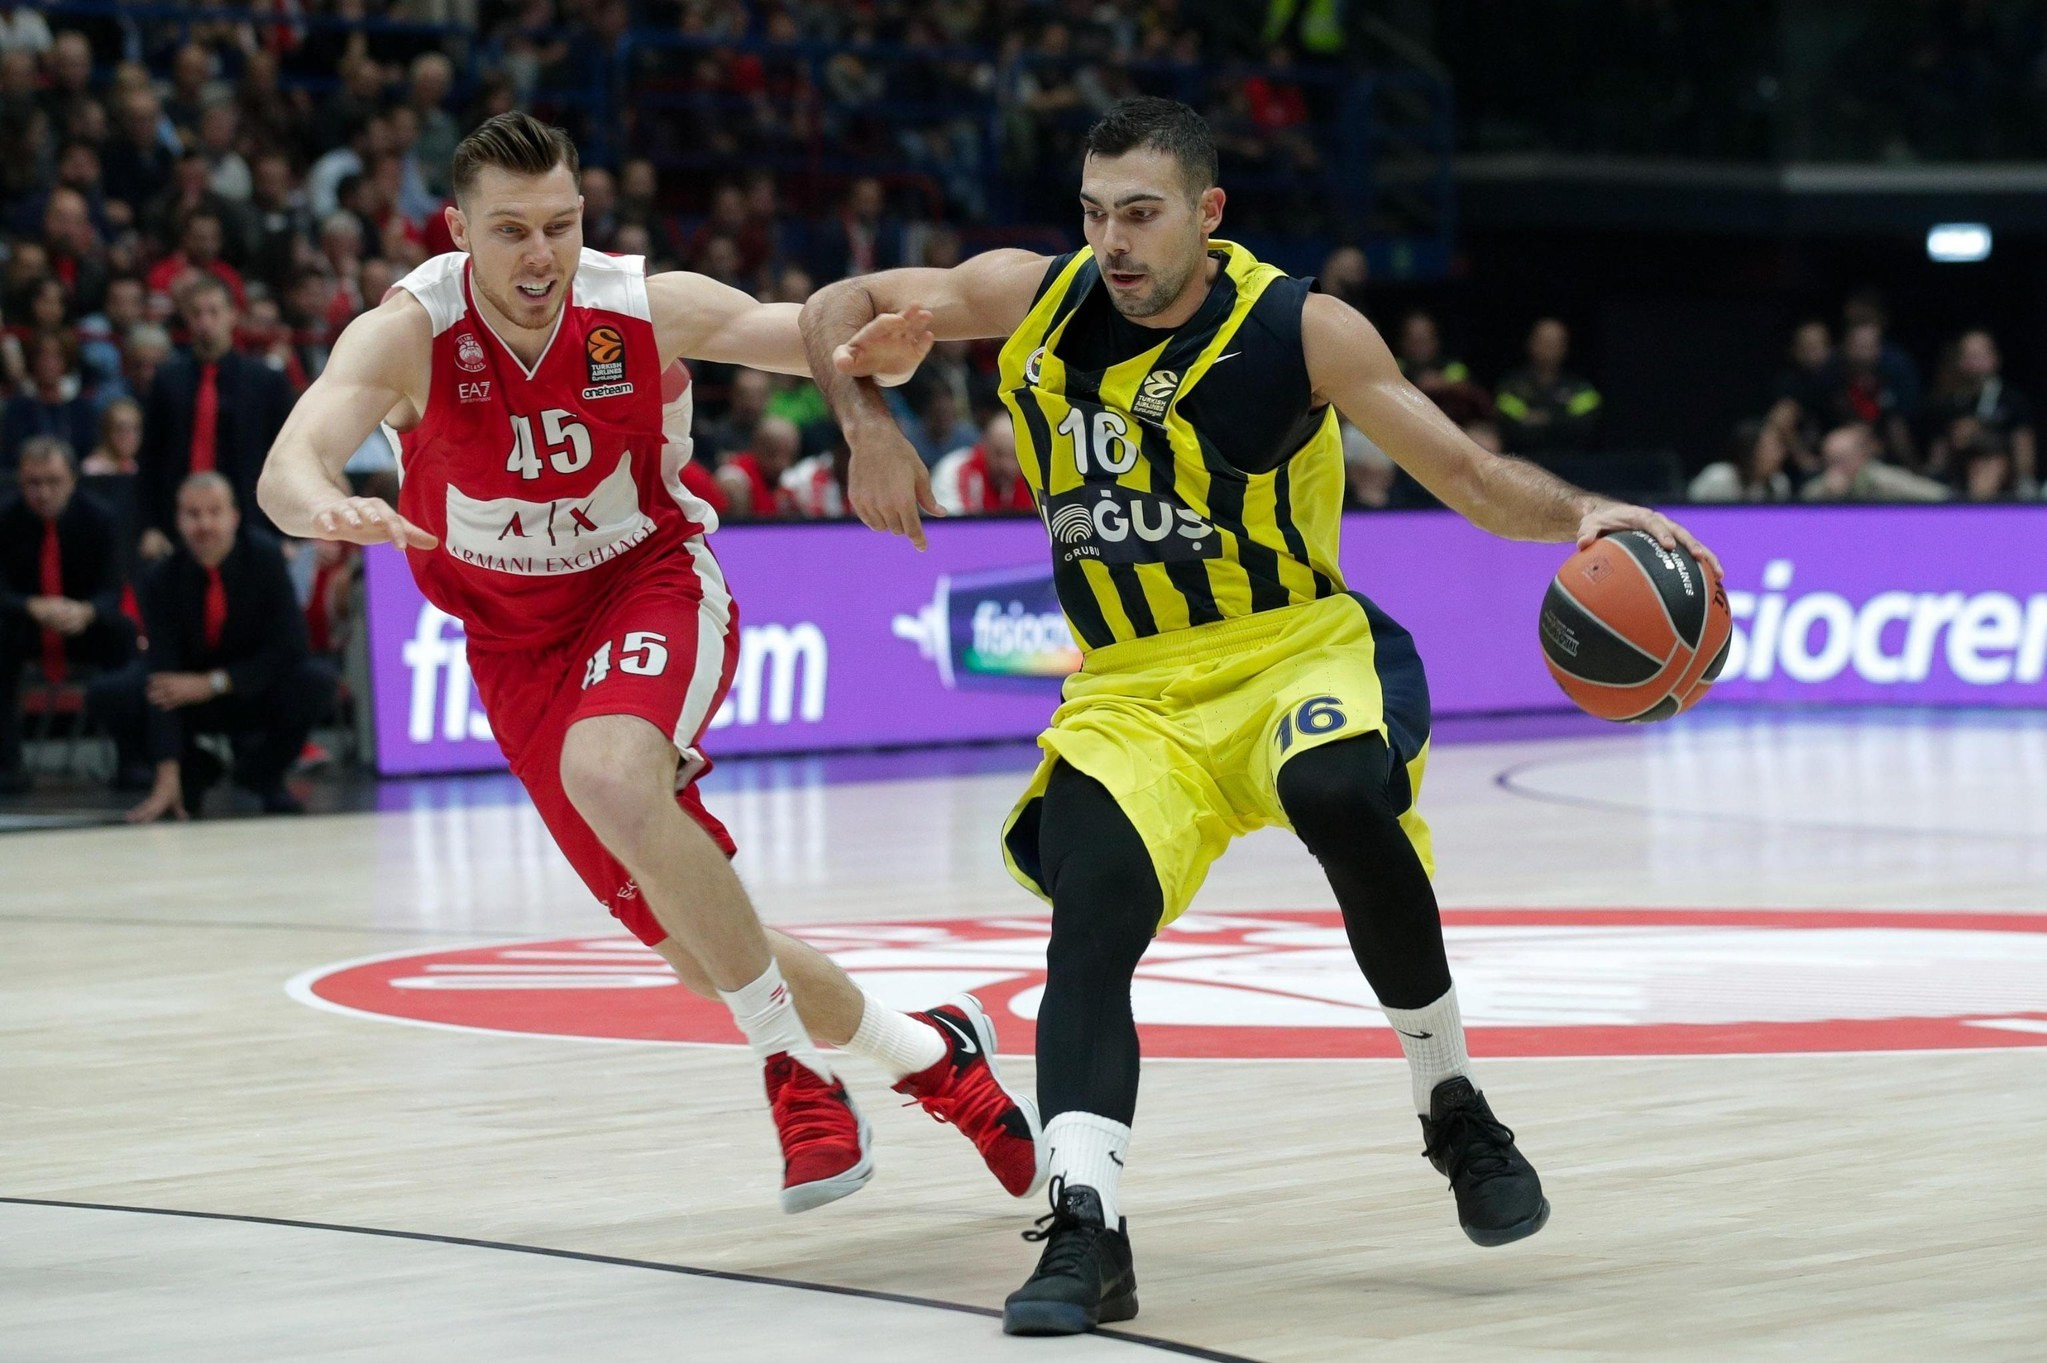 Dairis Bertans (L) and Kostas Sloukas in action during the Euroleague basketball match EA7 Olimpia Milano vs Fenerbahce Dou011fuu015f at the Assago Forum.